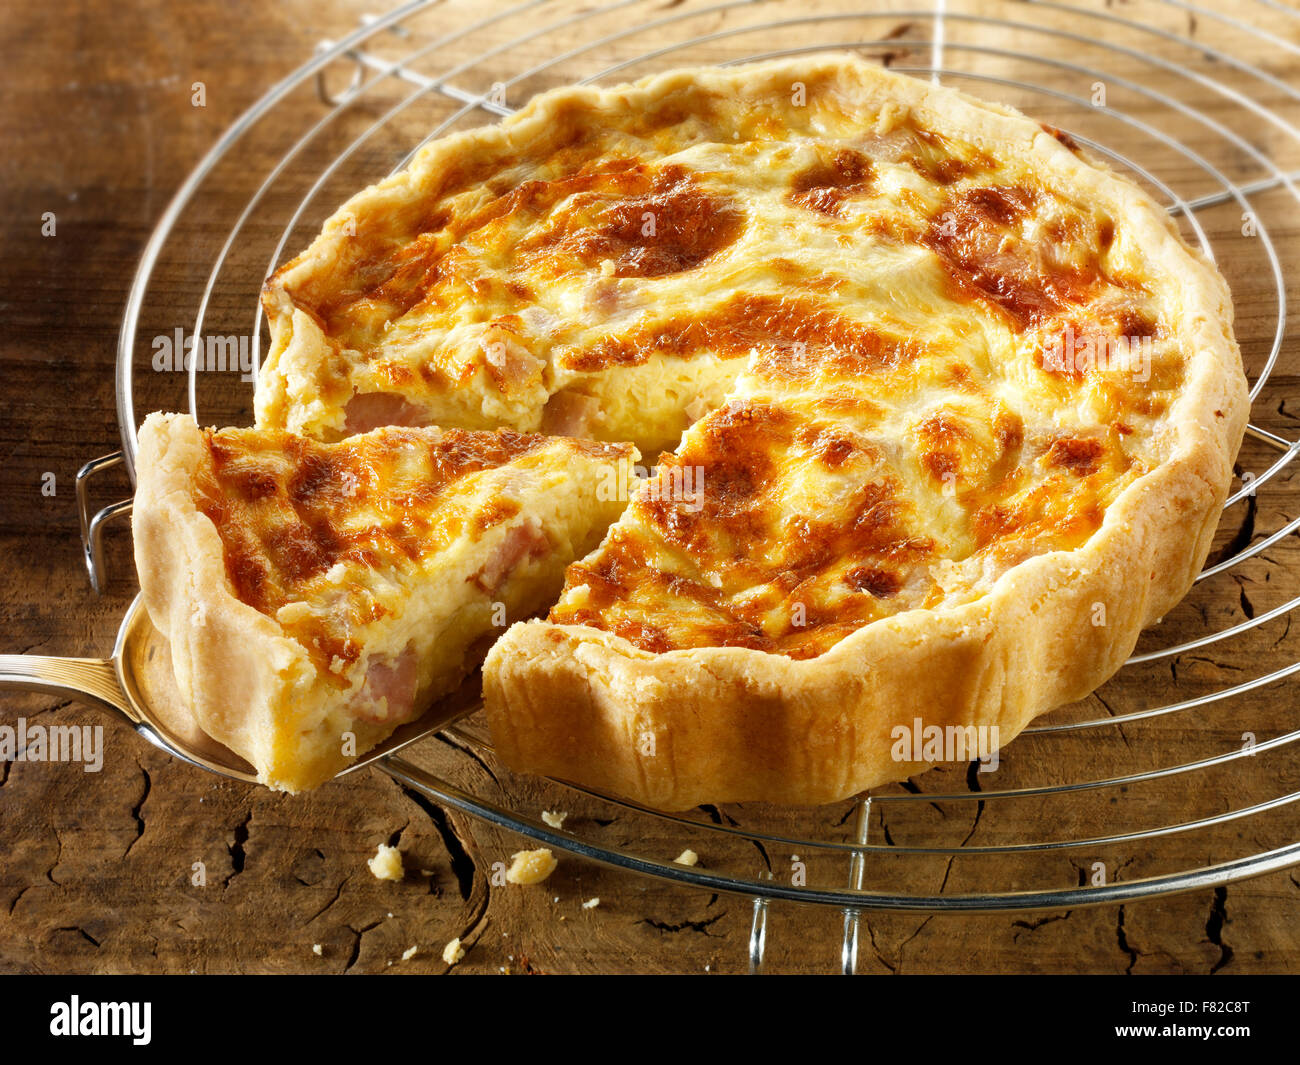 Whole quiche Loraine in a lunch time setting with a cut slice Stock Photo